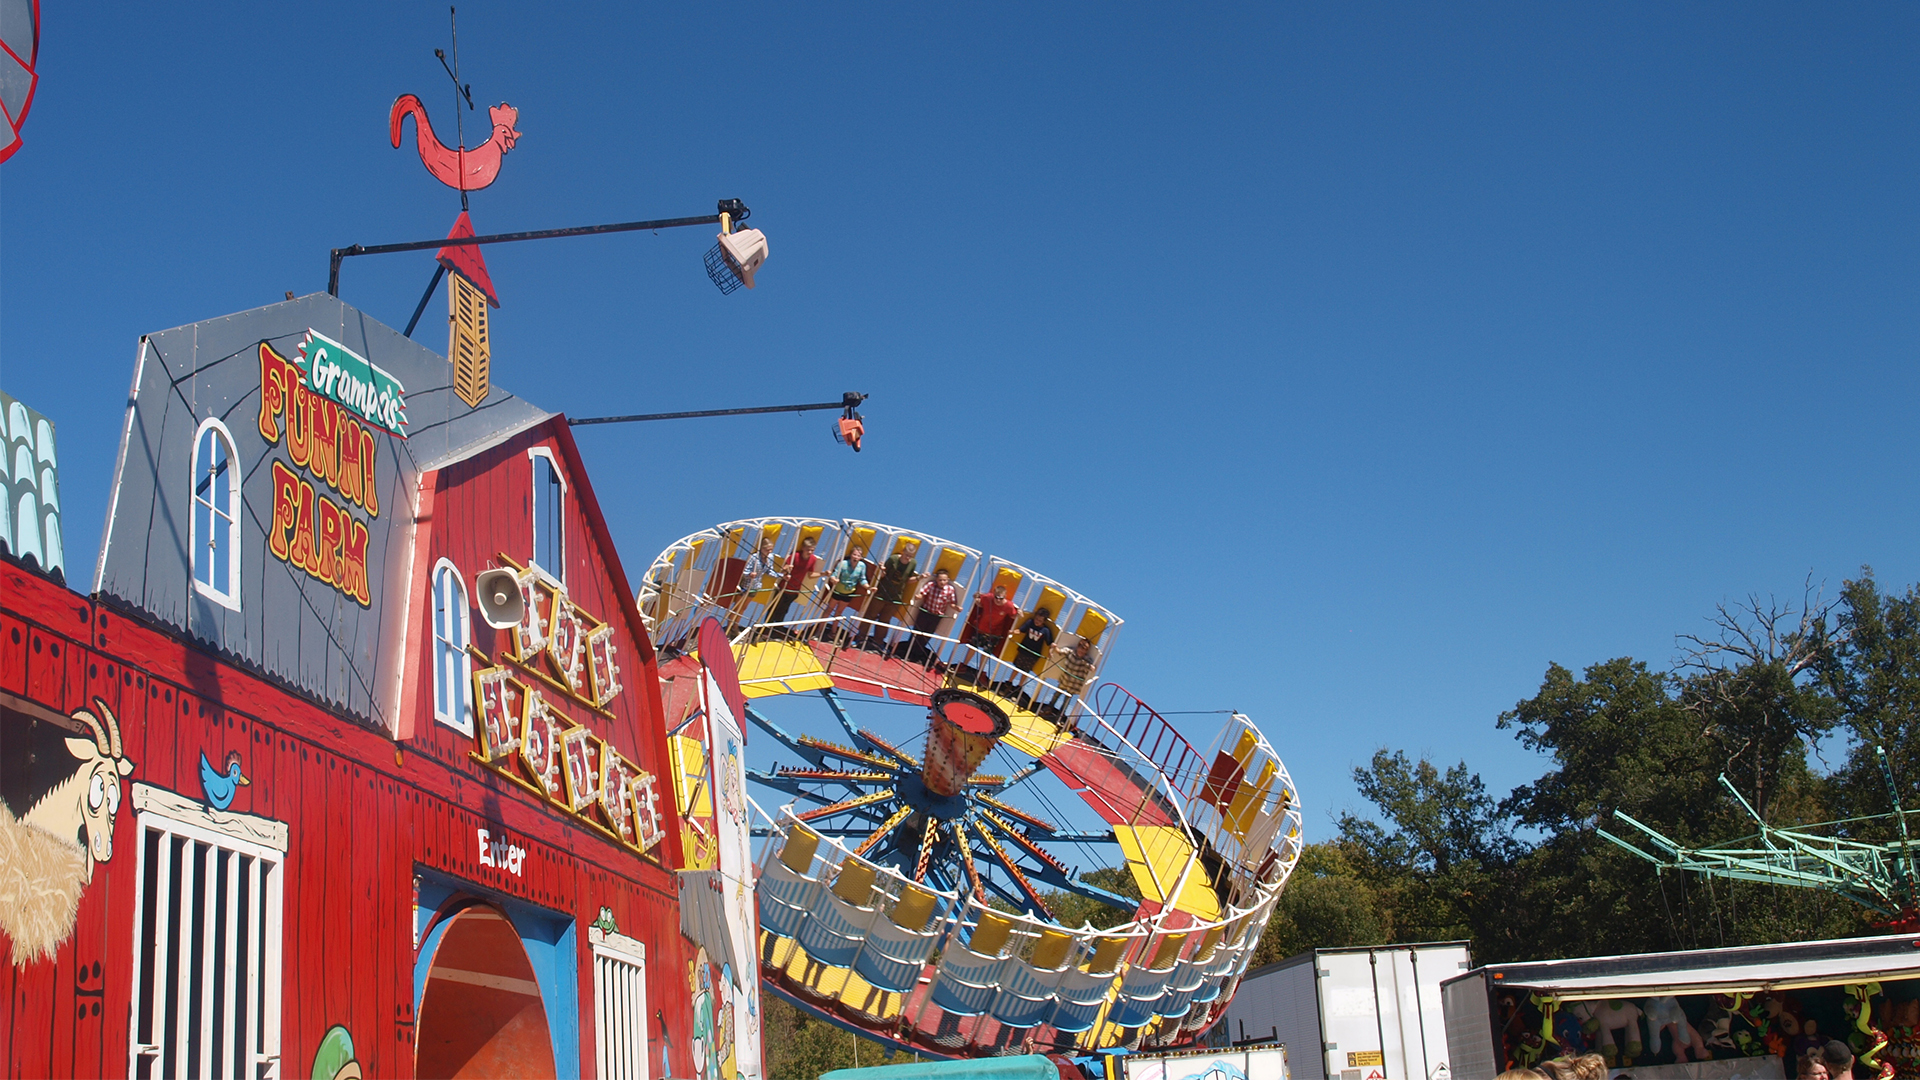 coldwater fair - September Events You Don't Want To Miss!